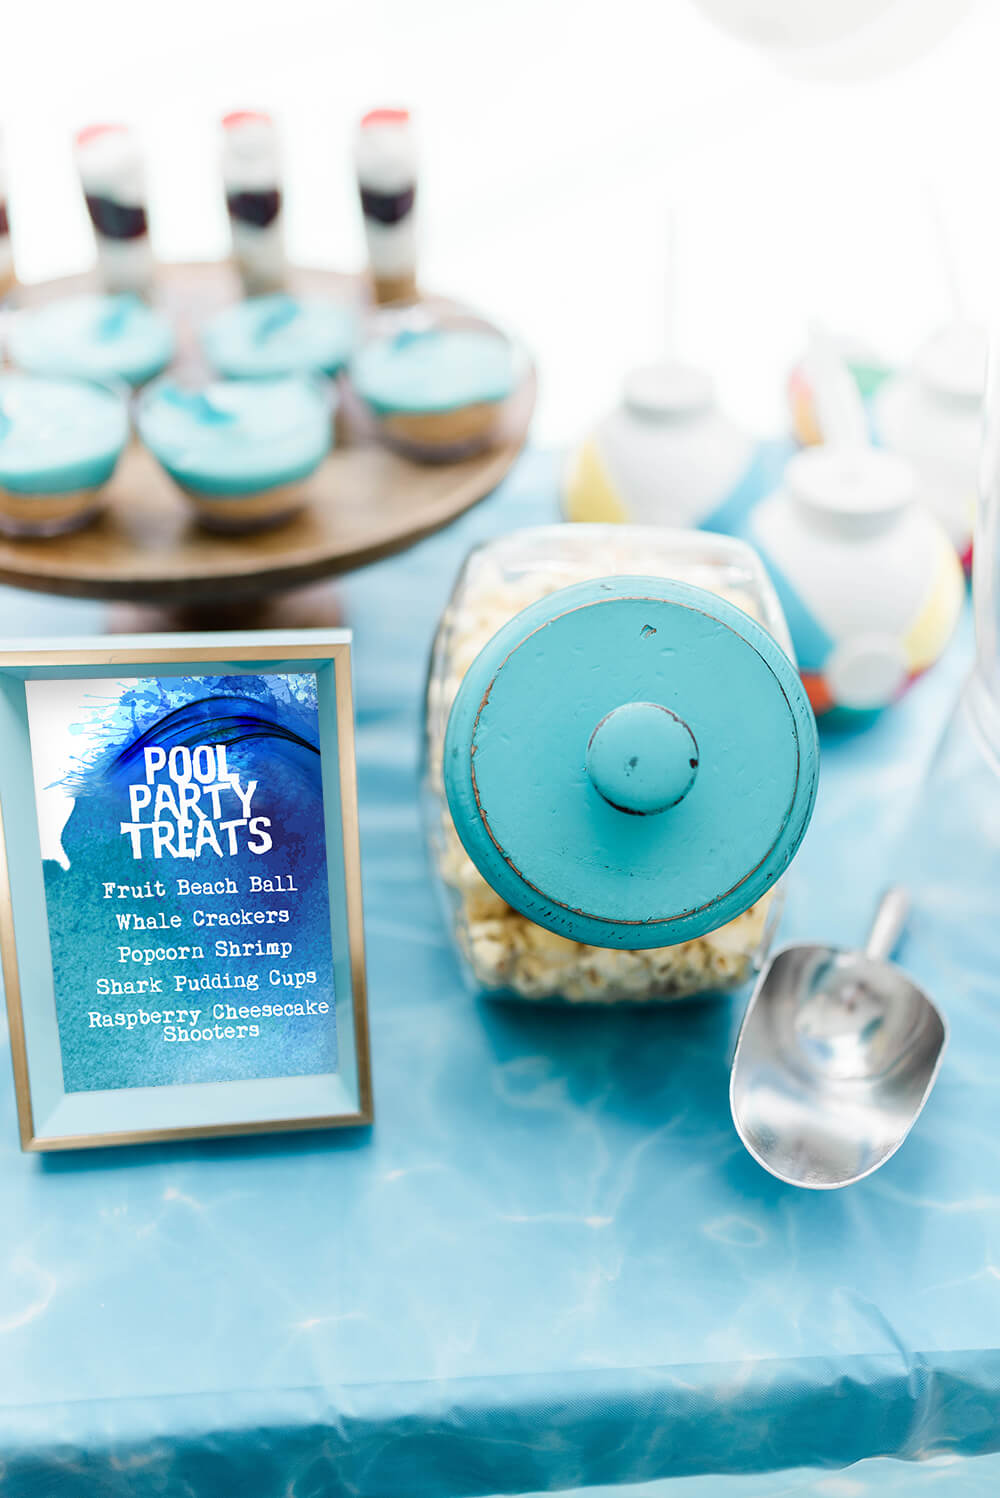 Pool party treat menu next to canister of popcorn